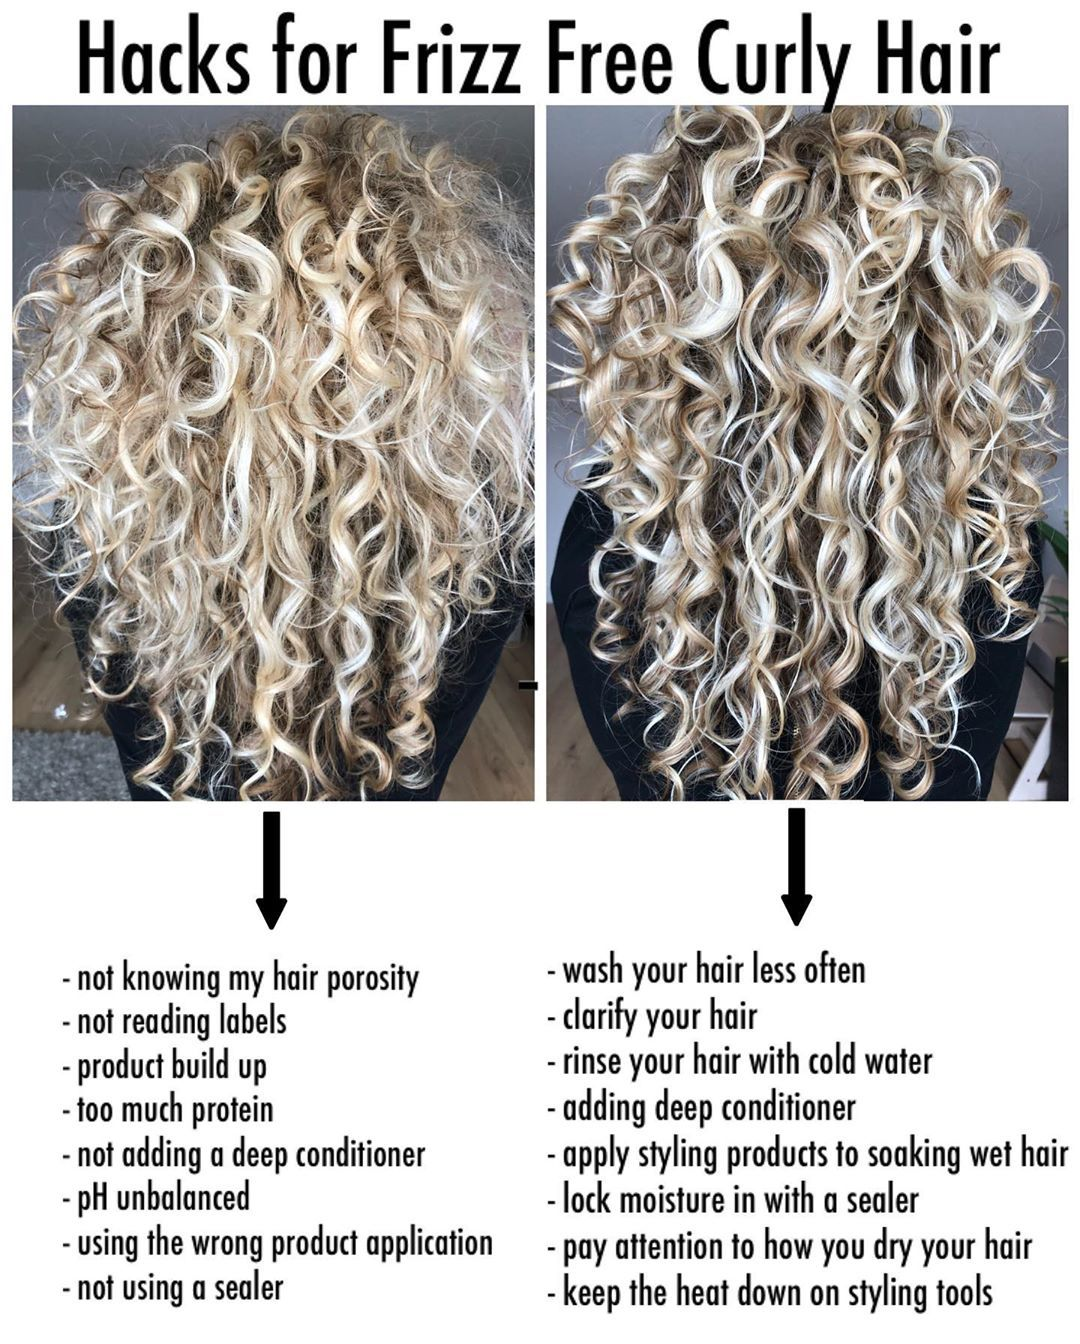 51cc5955d50305f9c49a59d6f38c48e3 - How To Get The Frizz Out Of My Curly Hair